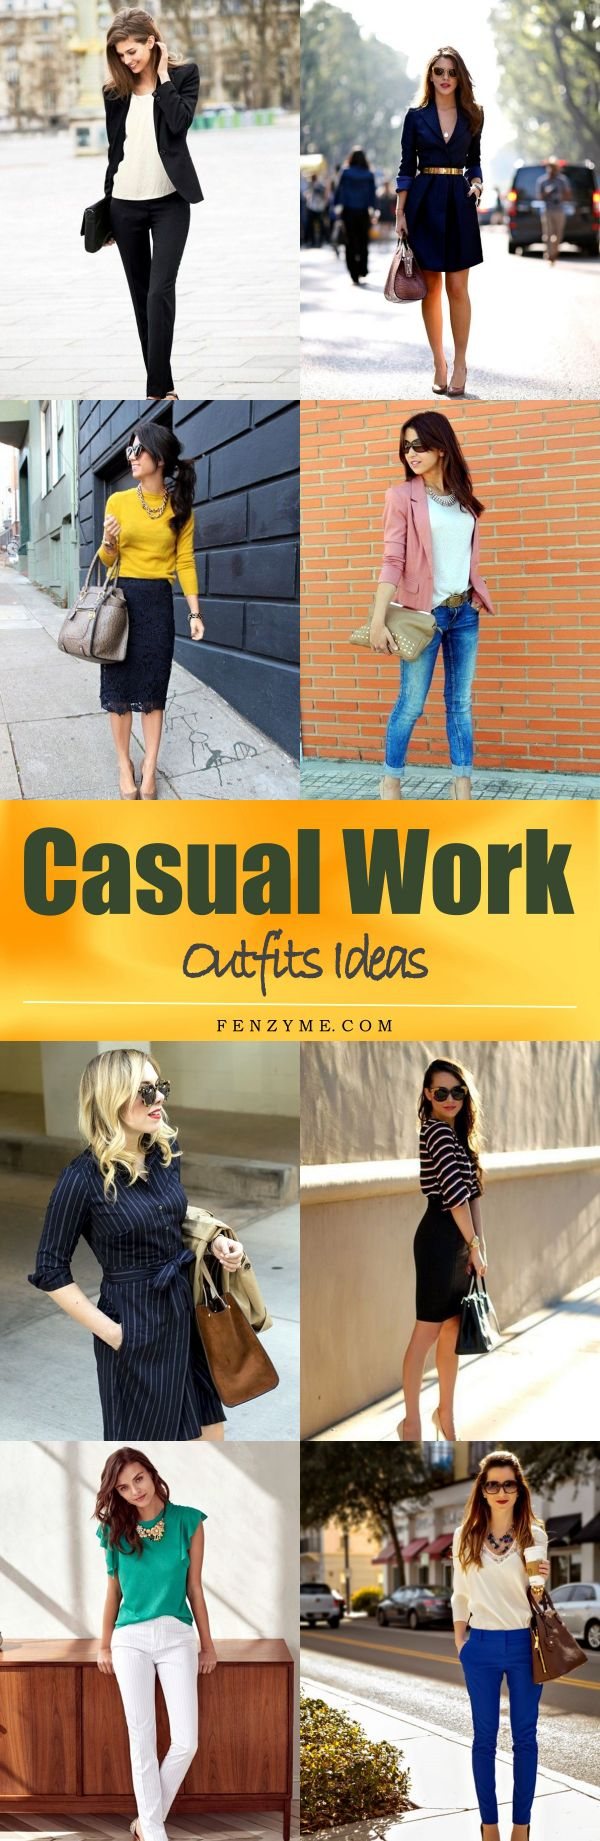 75 Casual Work Outfits Ideas 2017